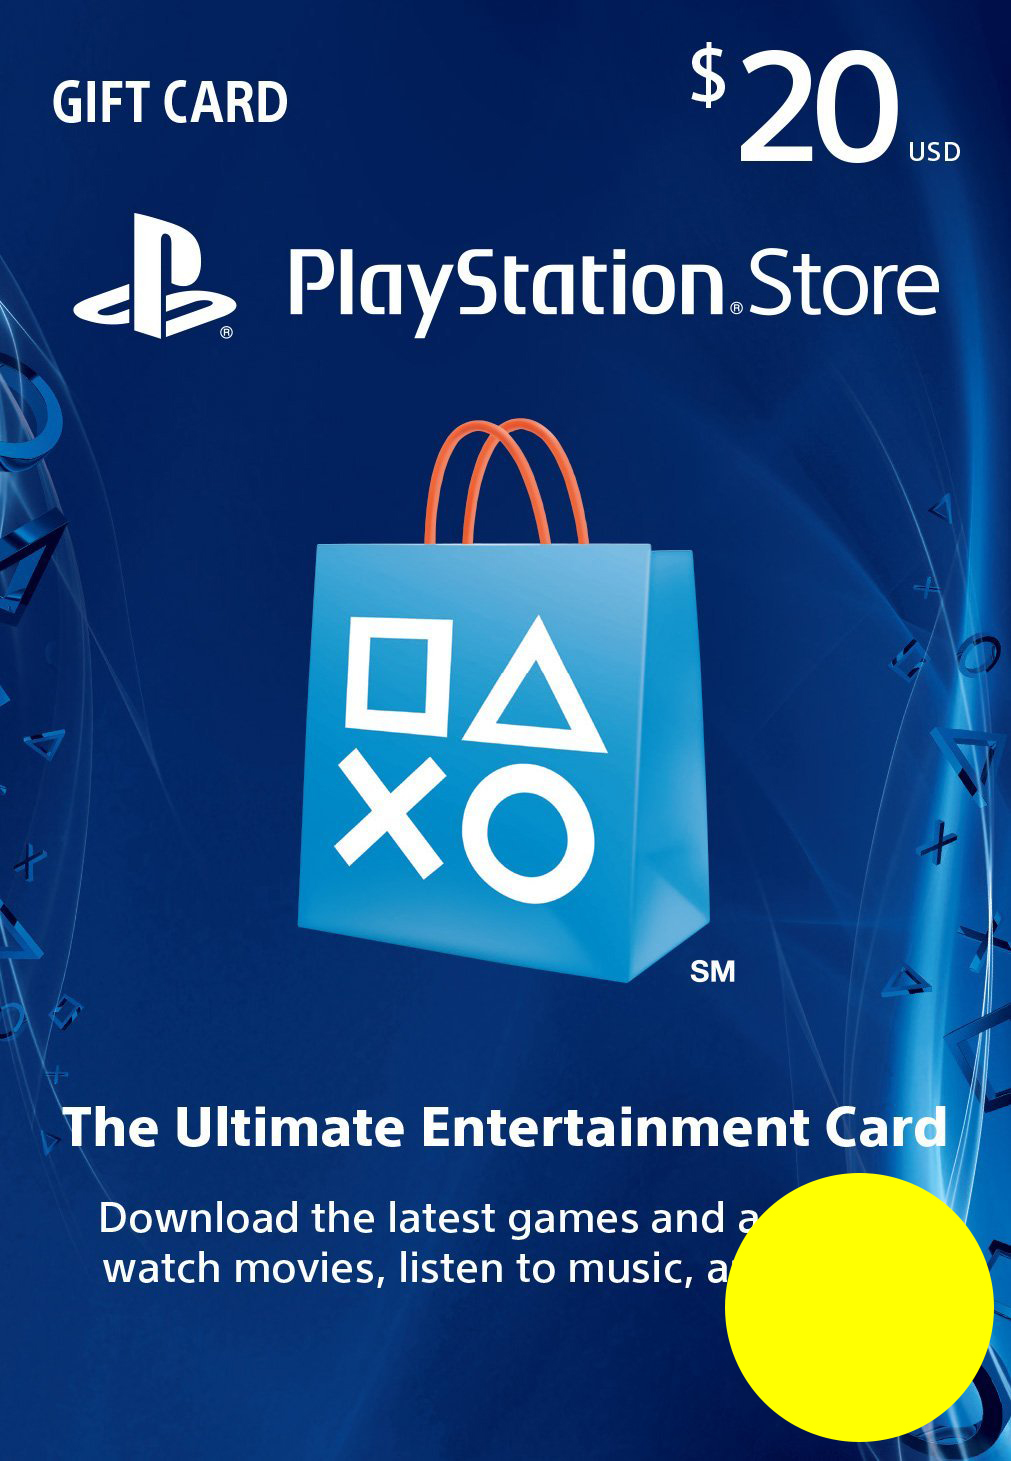 PSN Gift Card Code USA $20 PS4, PS3, PS Vita